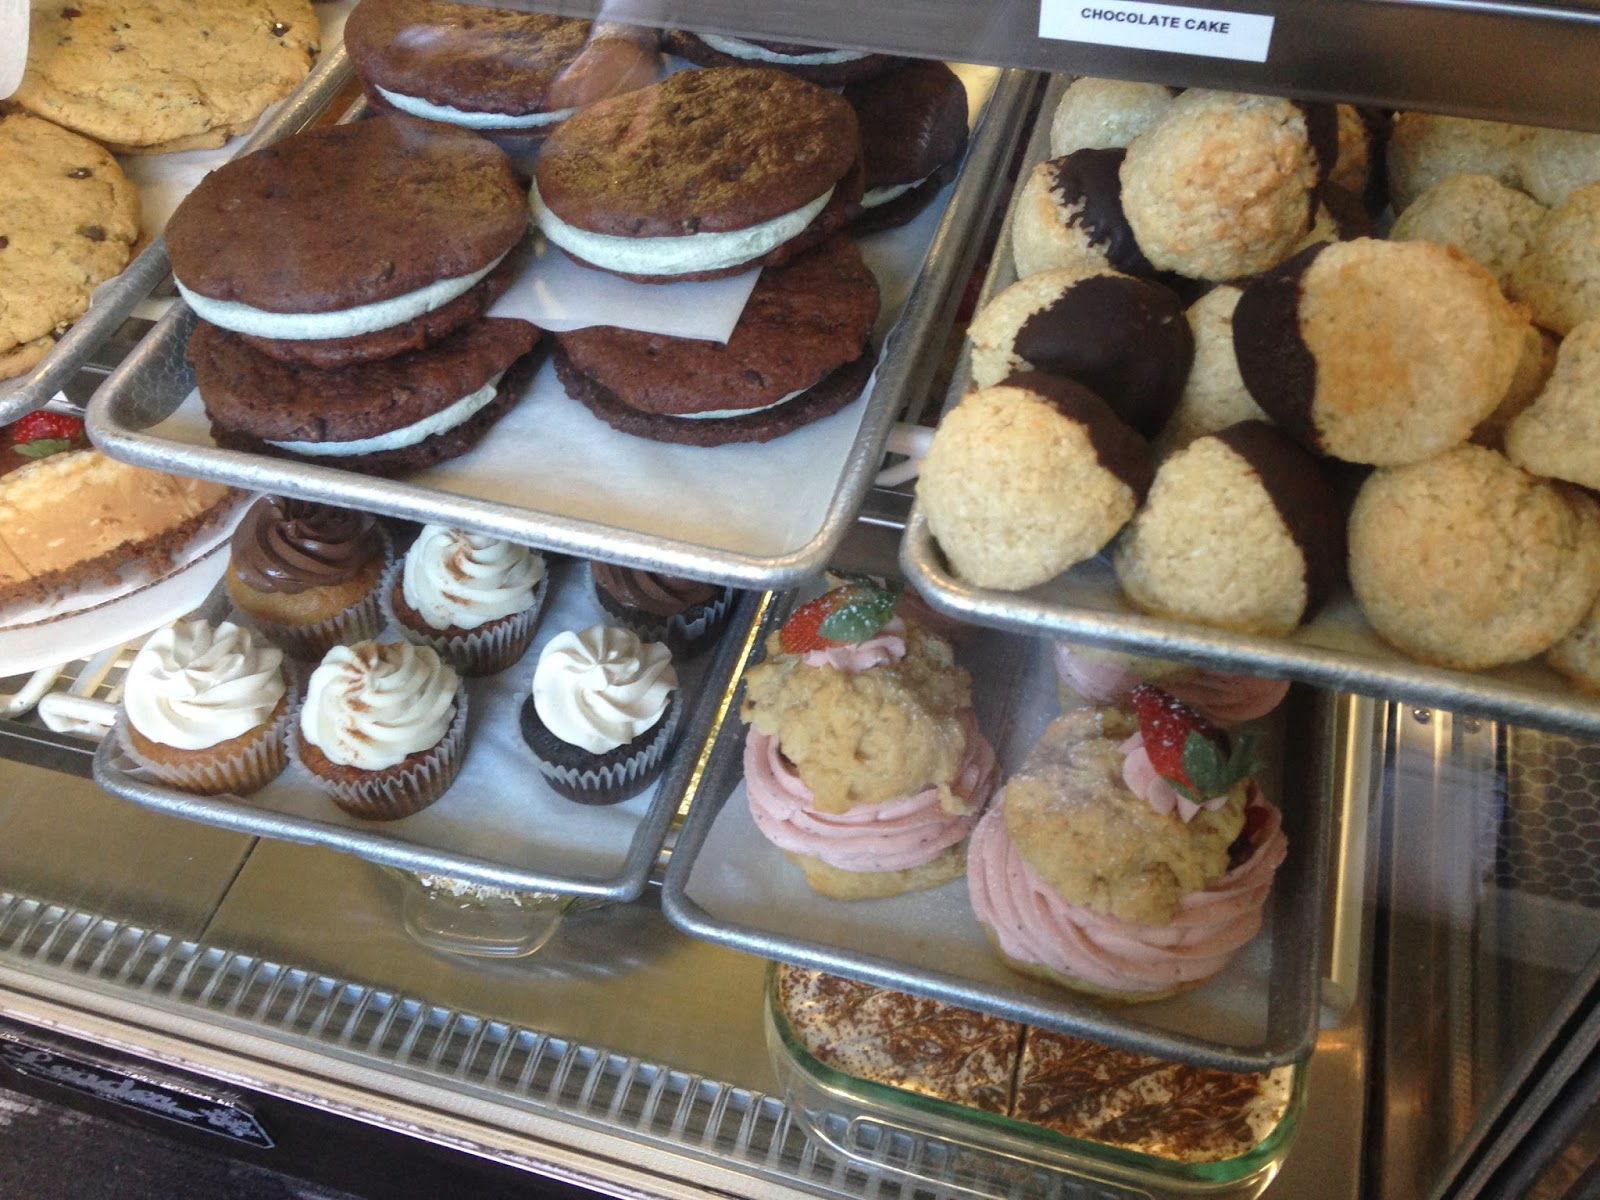 Vegan Pastries & Baked Goods - Peacefood Cafe